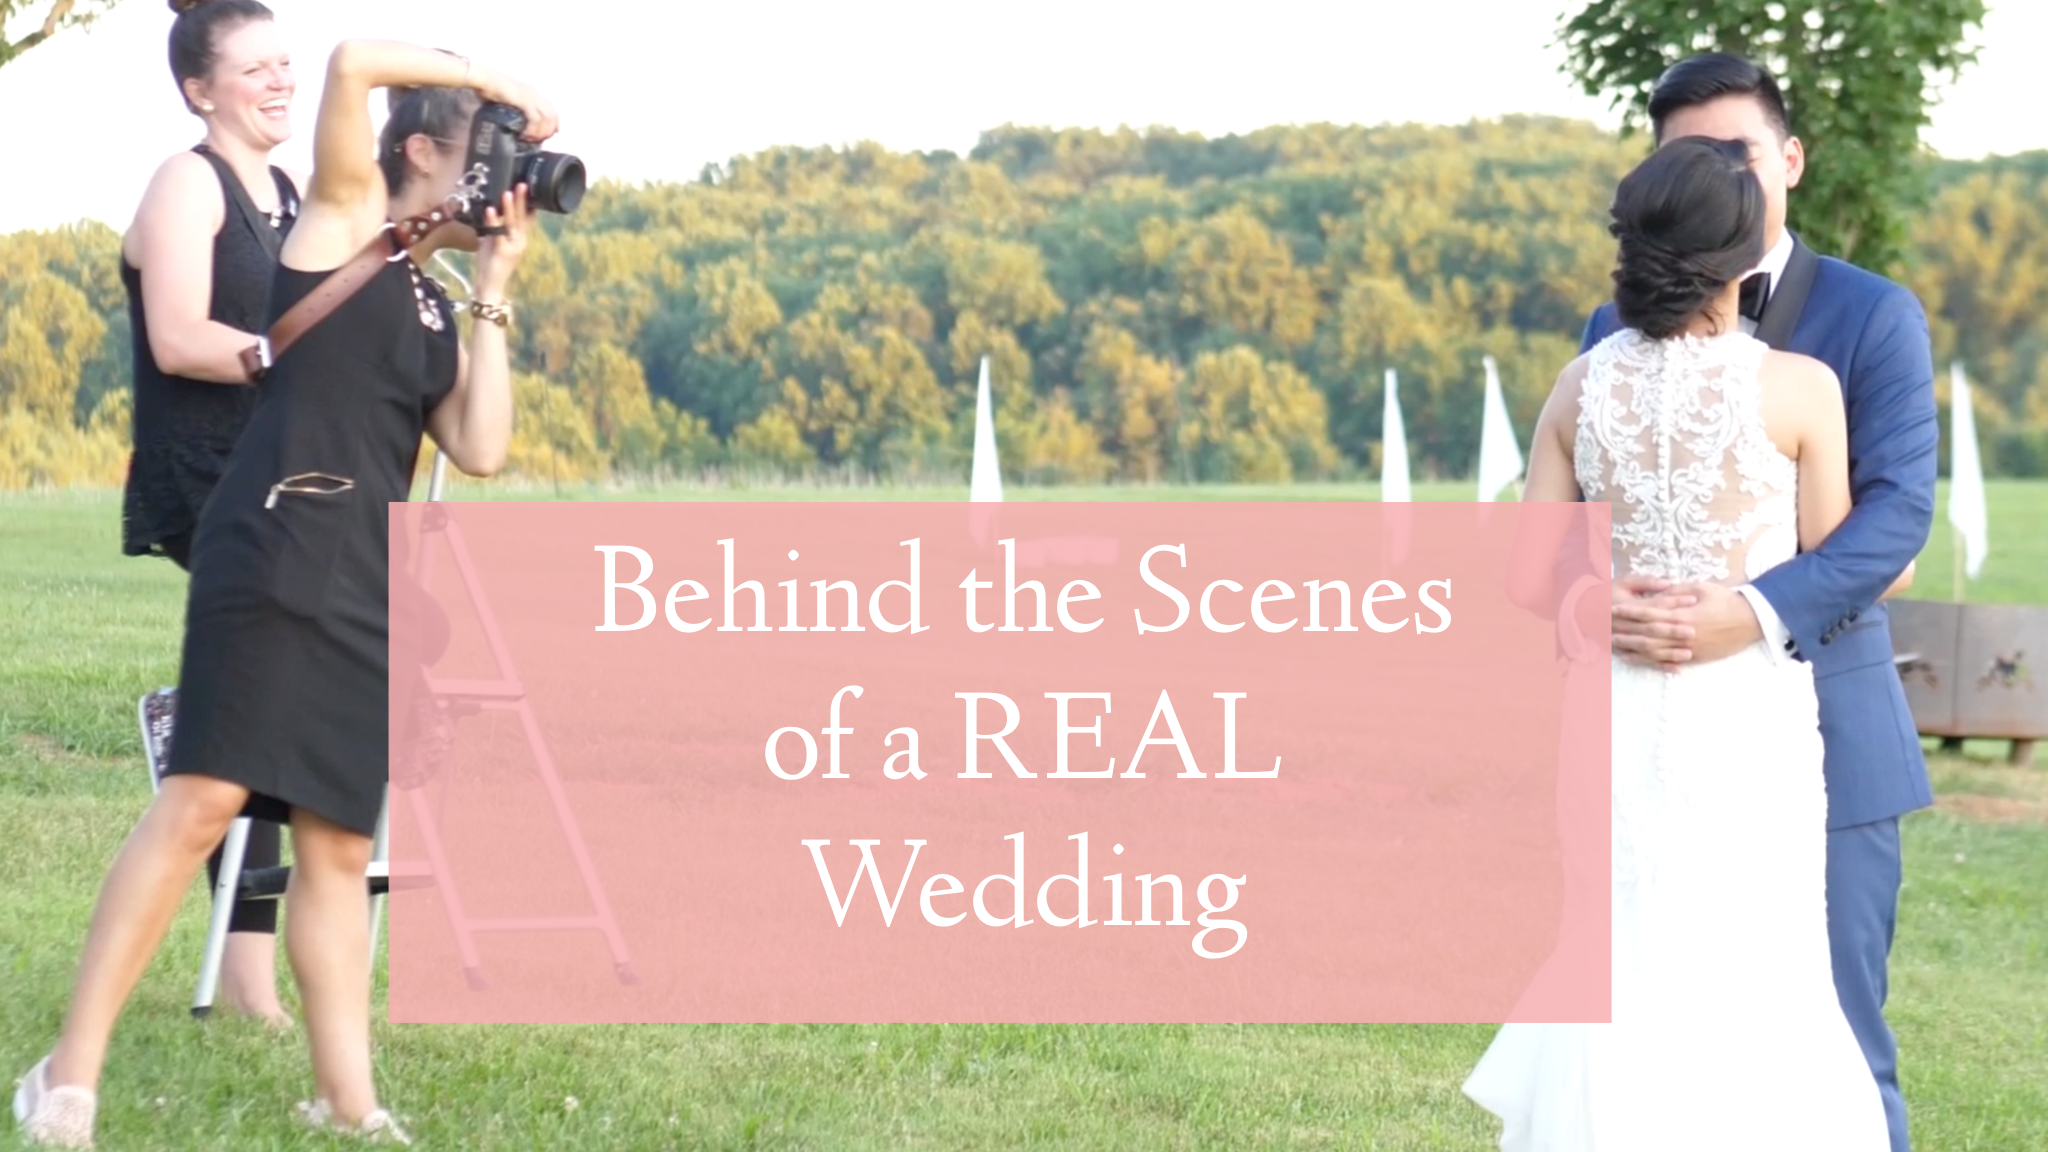 Behind the Scenes of a REAL Wedding